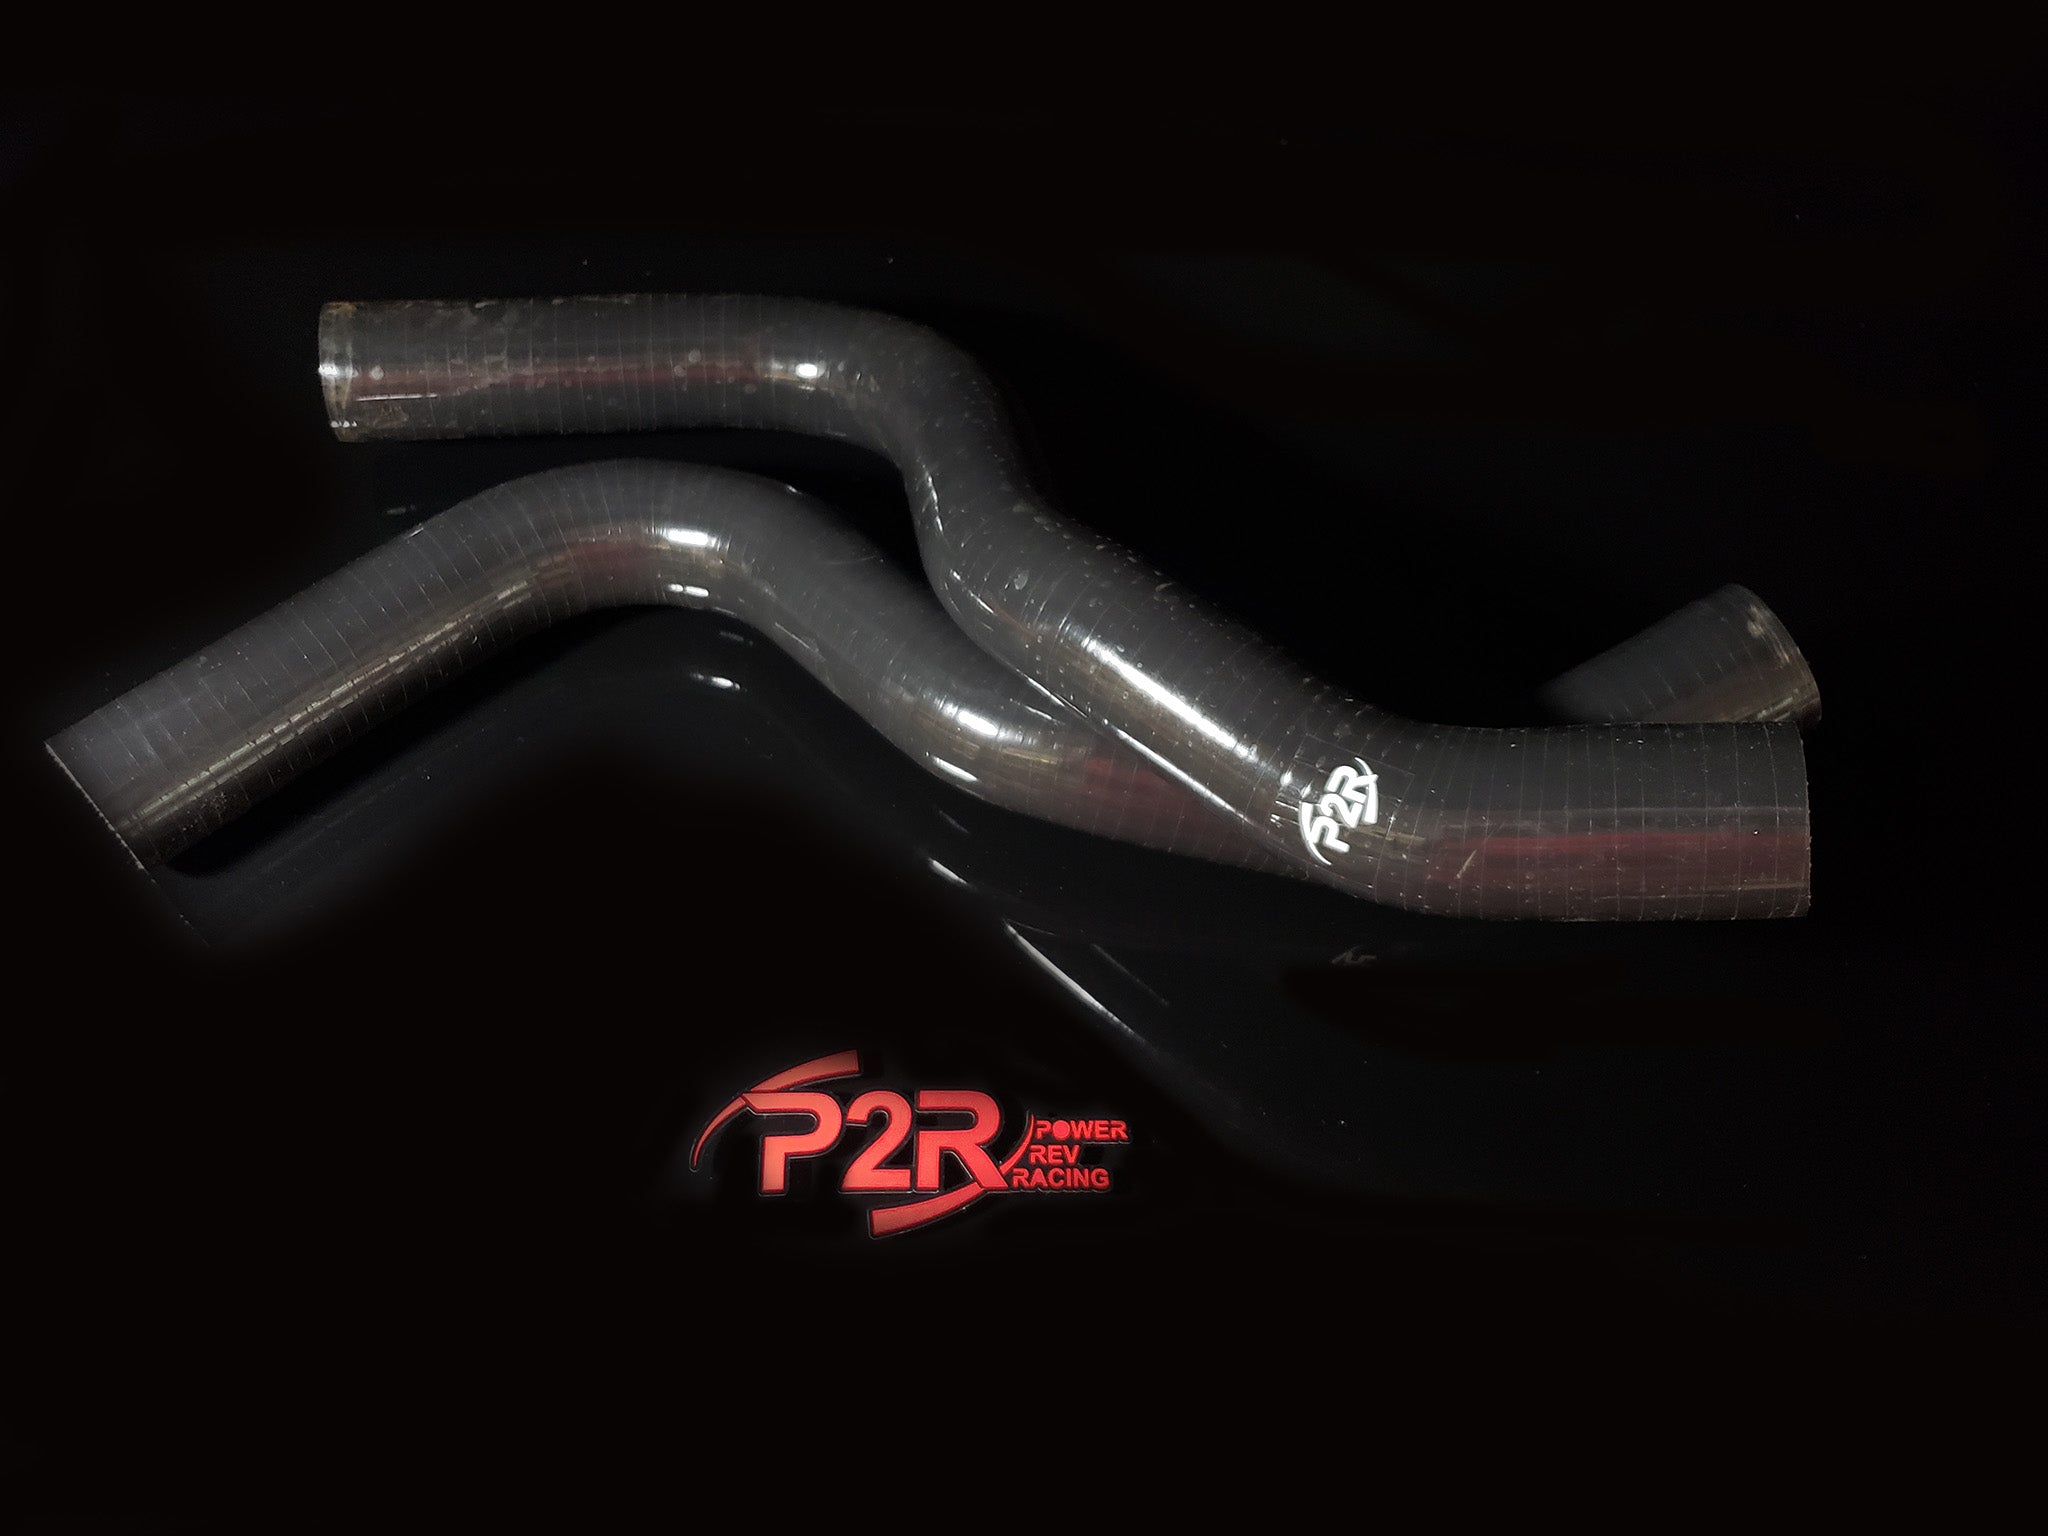 P2R PowerRevRacing - BLACK Silicone Radiator Hoses - 2007-2008 Acura TL & TL Type S Manual - RHK003B